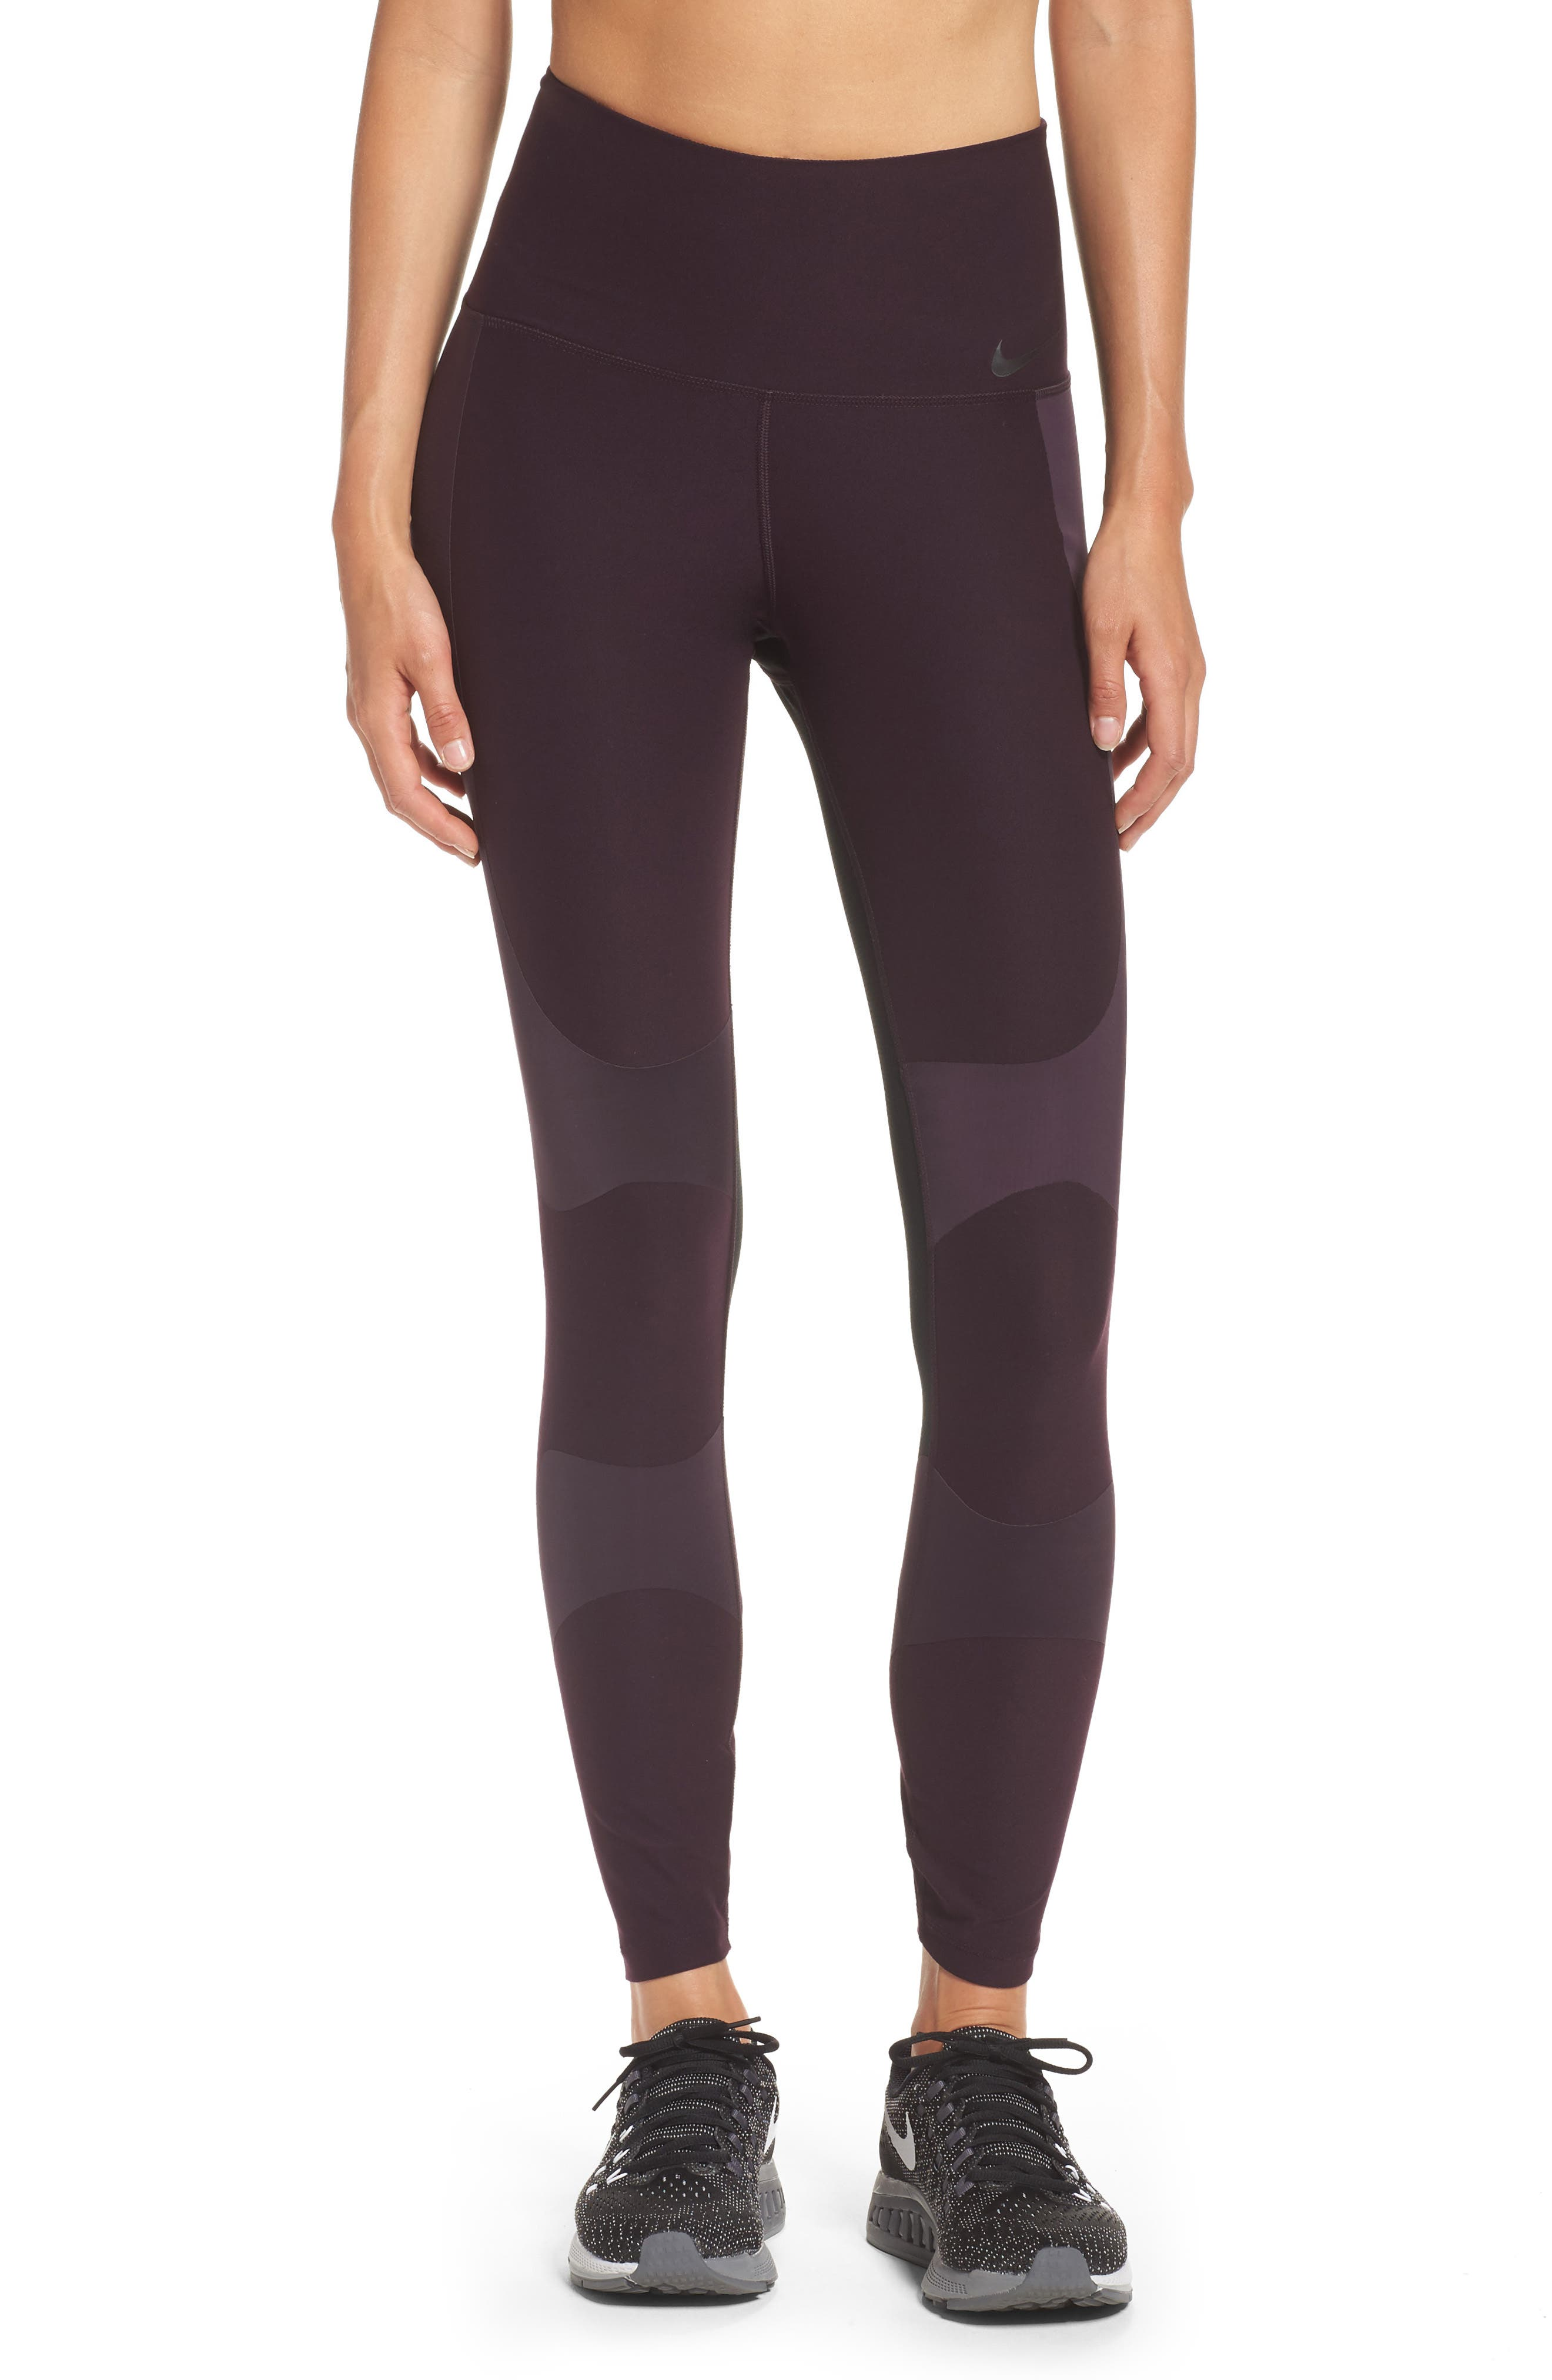 Alternate Image 1 Selected - Nike Power Legend Training Tights